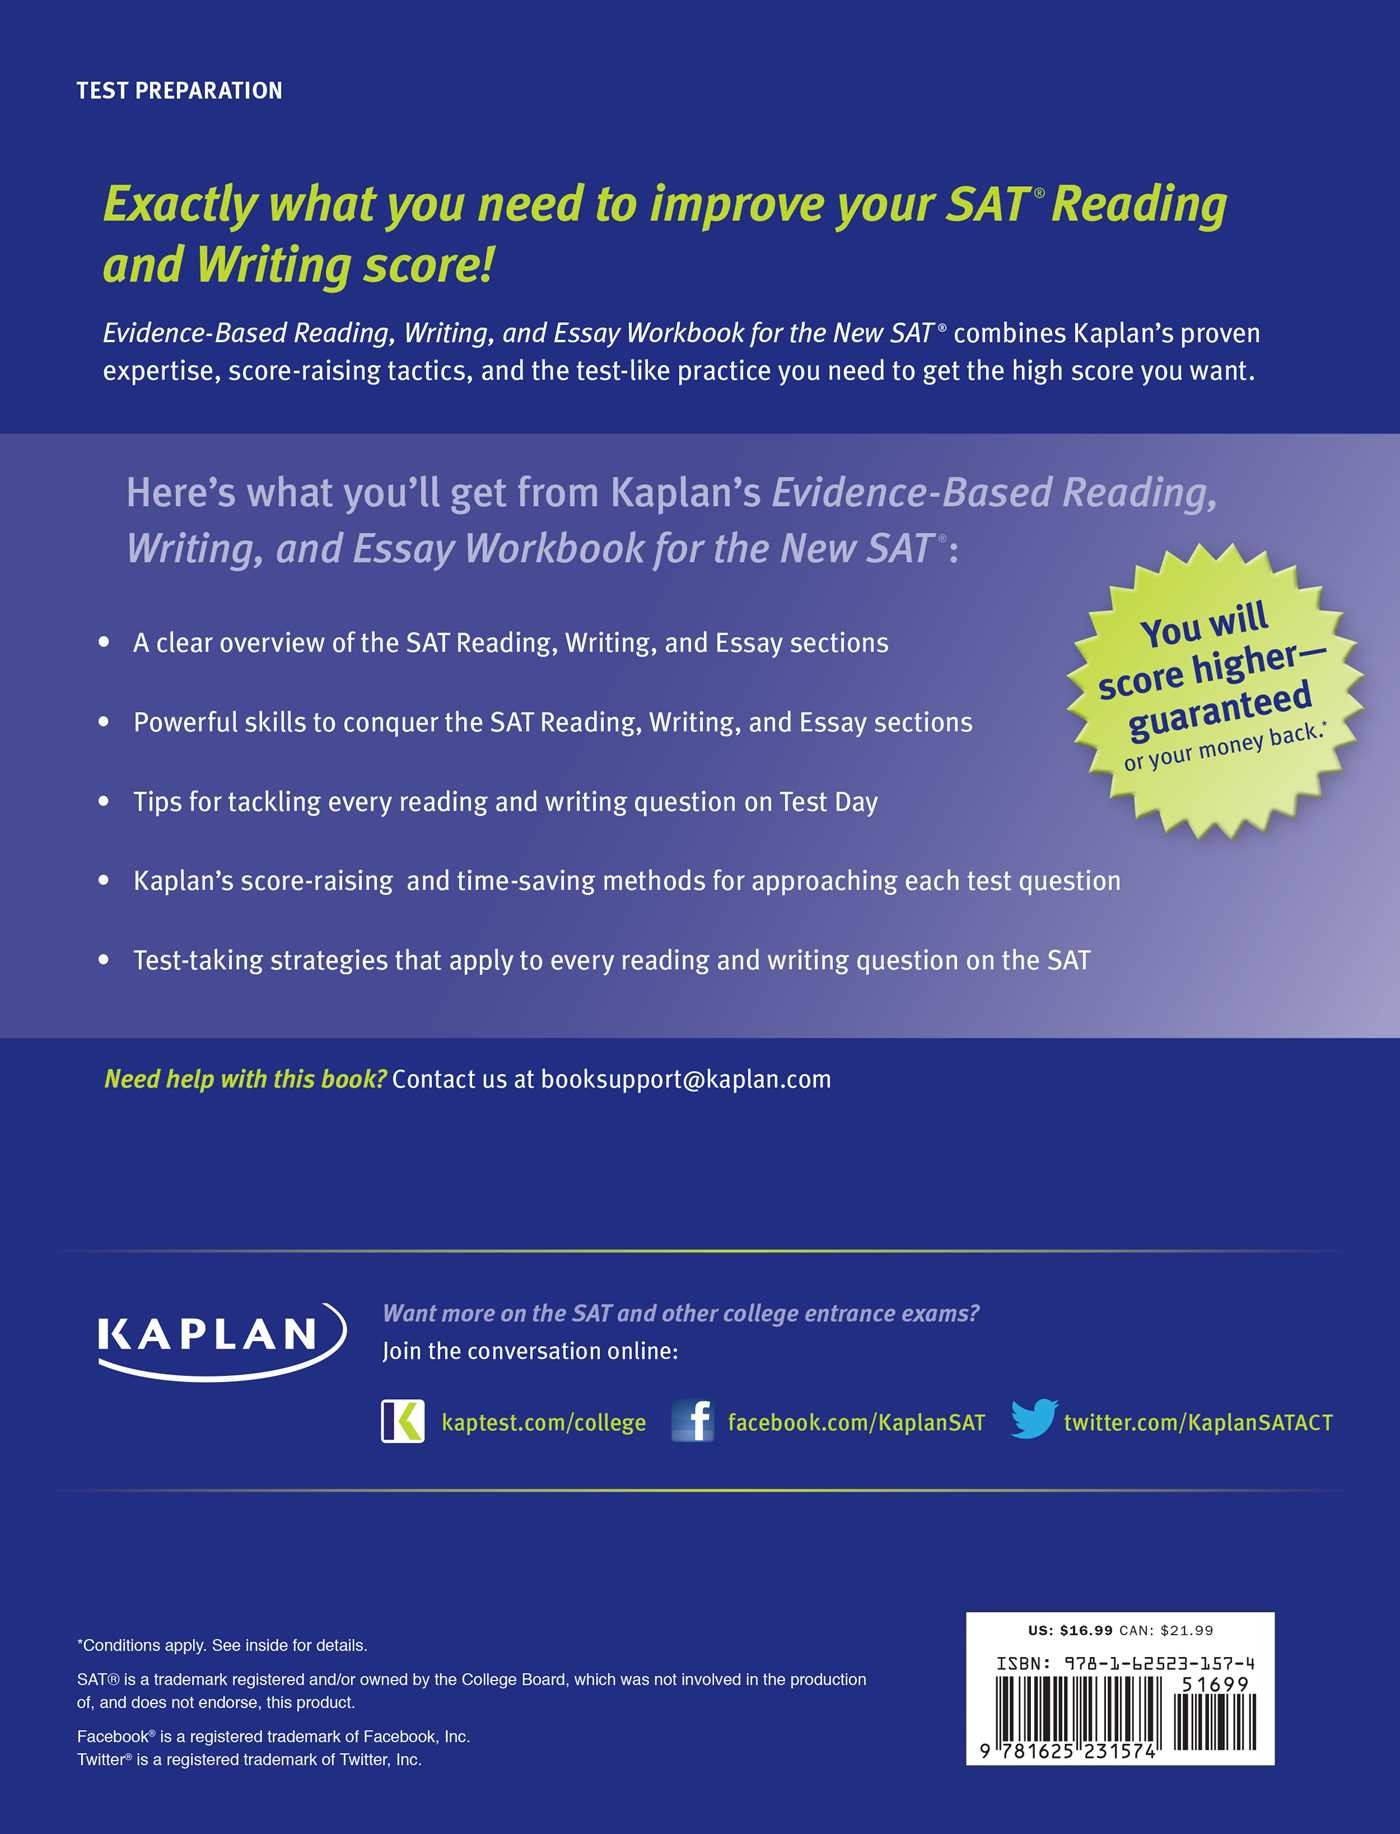 kaplan evidence based reading writing and essay workbook for the kaplan evidence based reading writing and essay workbook for the new sat 9781625231574 in01